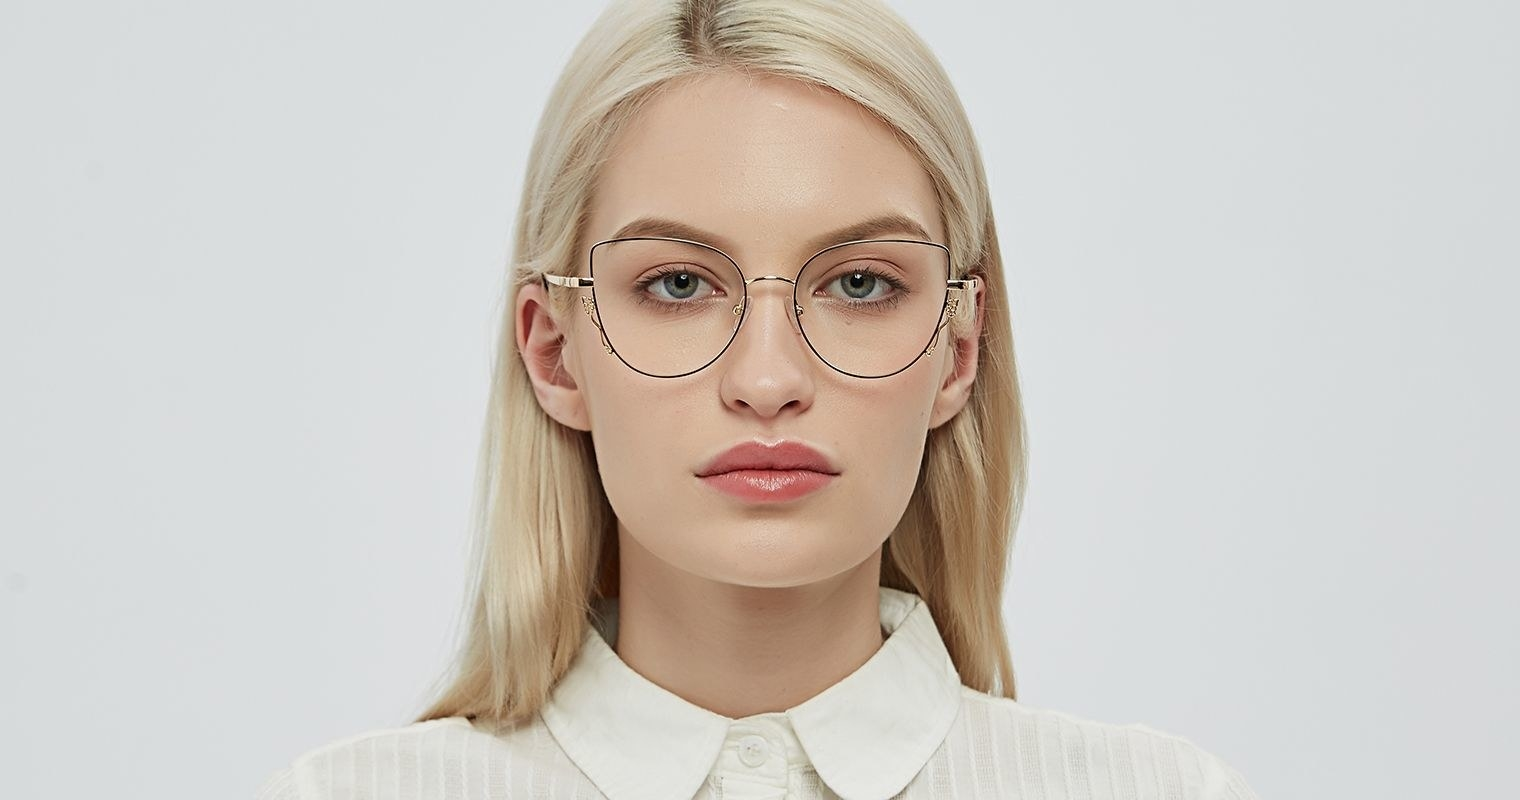 model wearing large cat eye glasses in black and gold